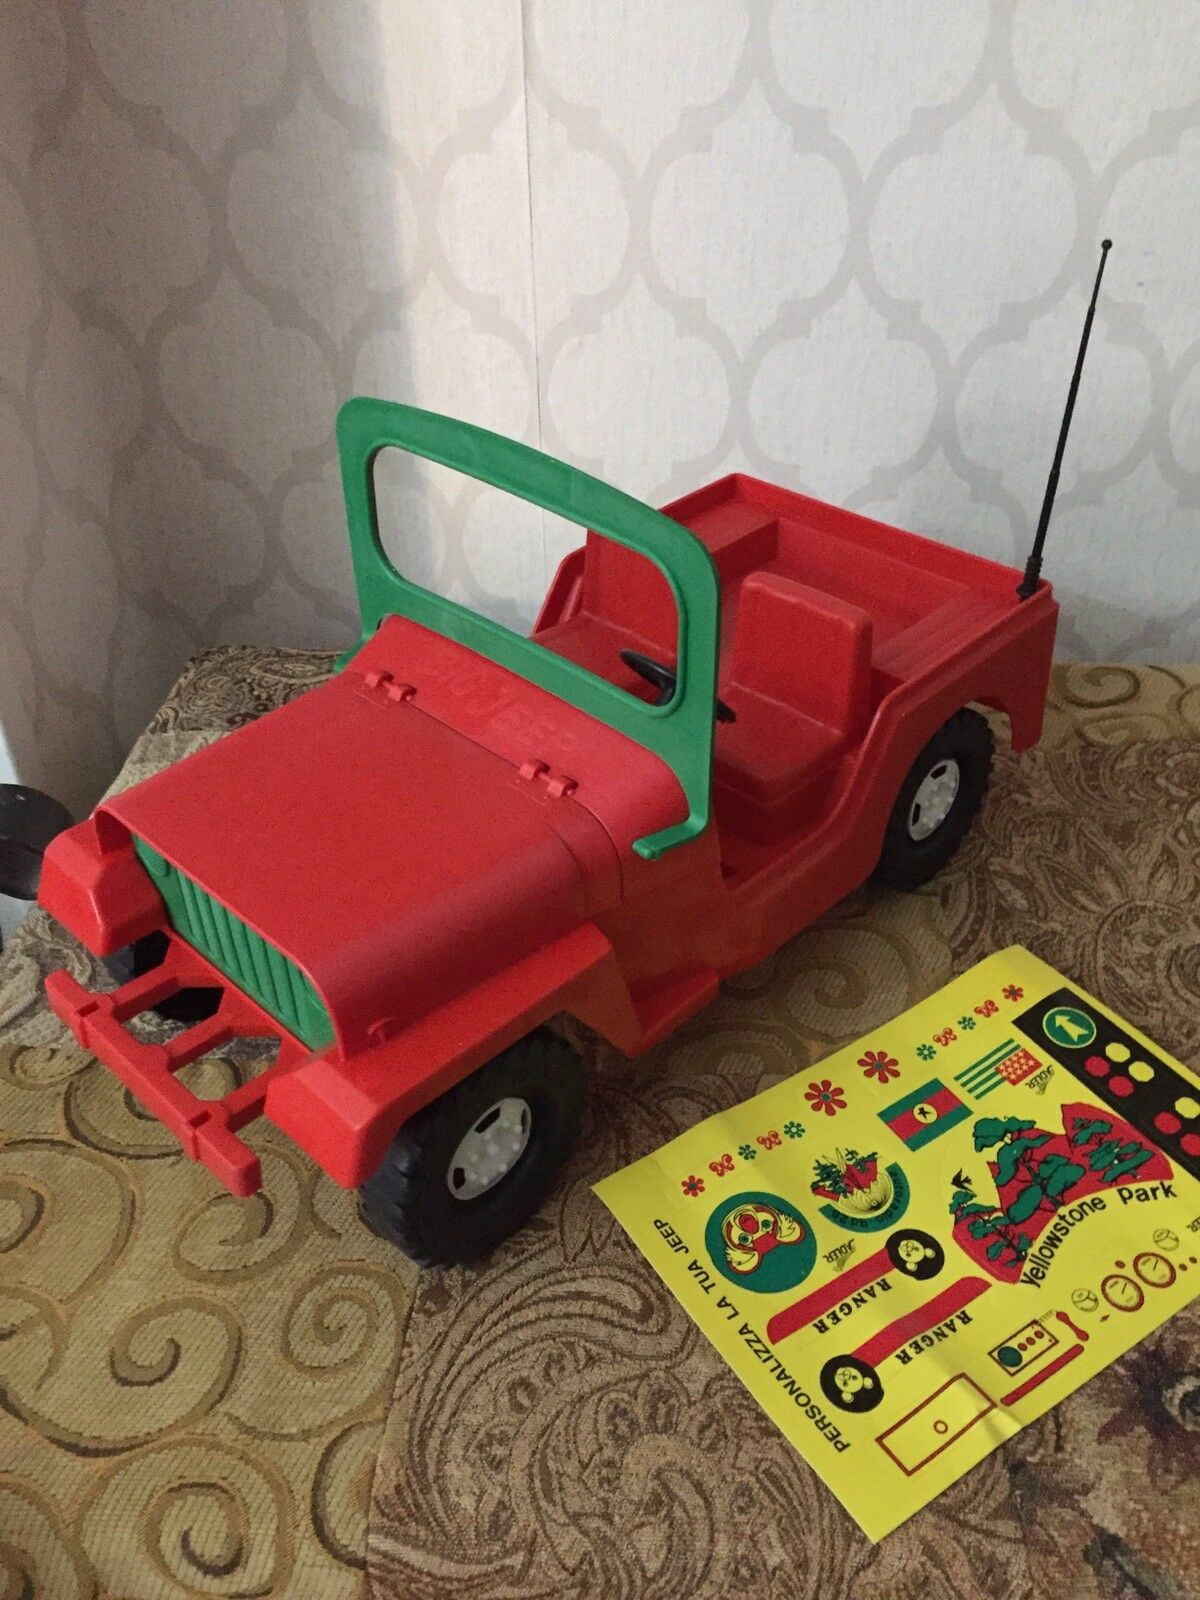 Jeep Willys Adler Vintage Toy Car Big Jeep 1 8 No Polistil Reel Ellegi 4x4